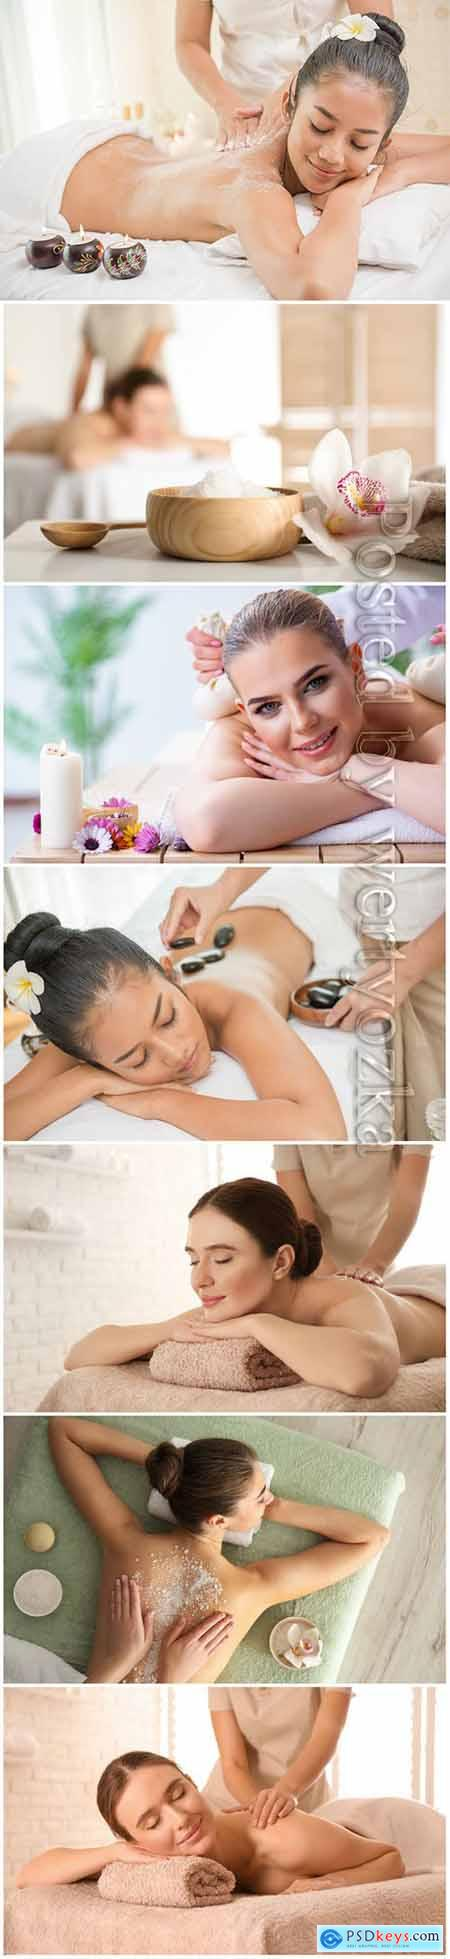 Spa treatments, beautiful, girls, spa, massage